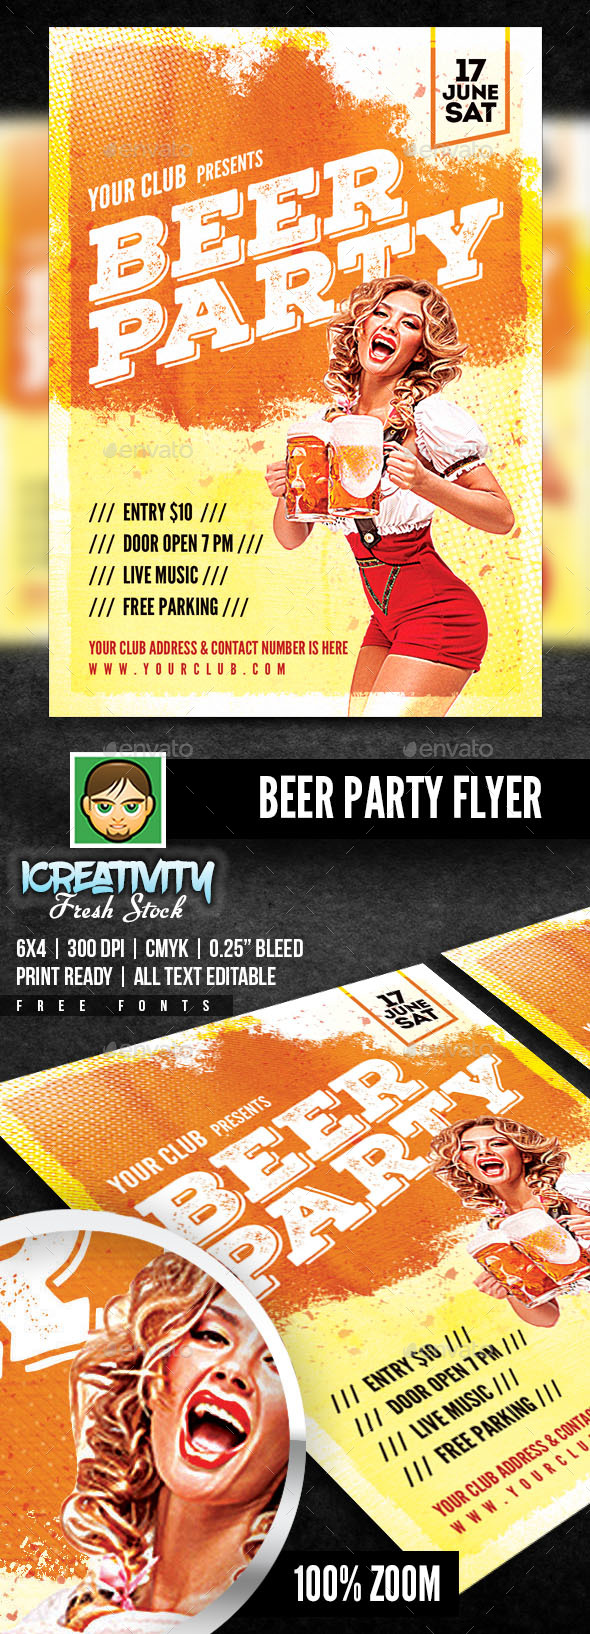 Beer Party Flyer - Flyers Print Templates